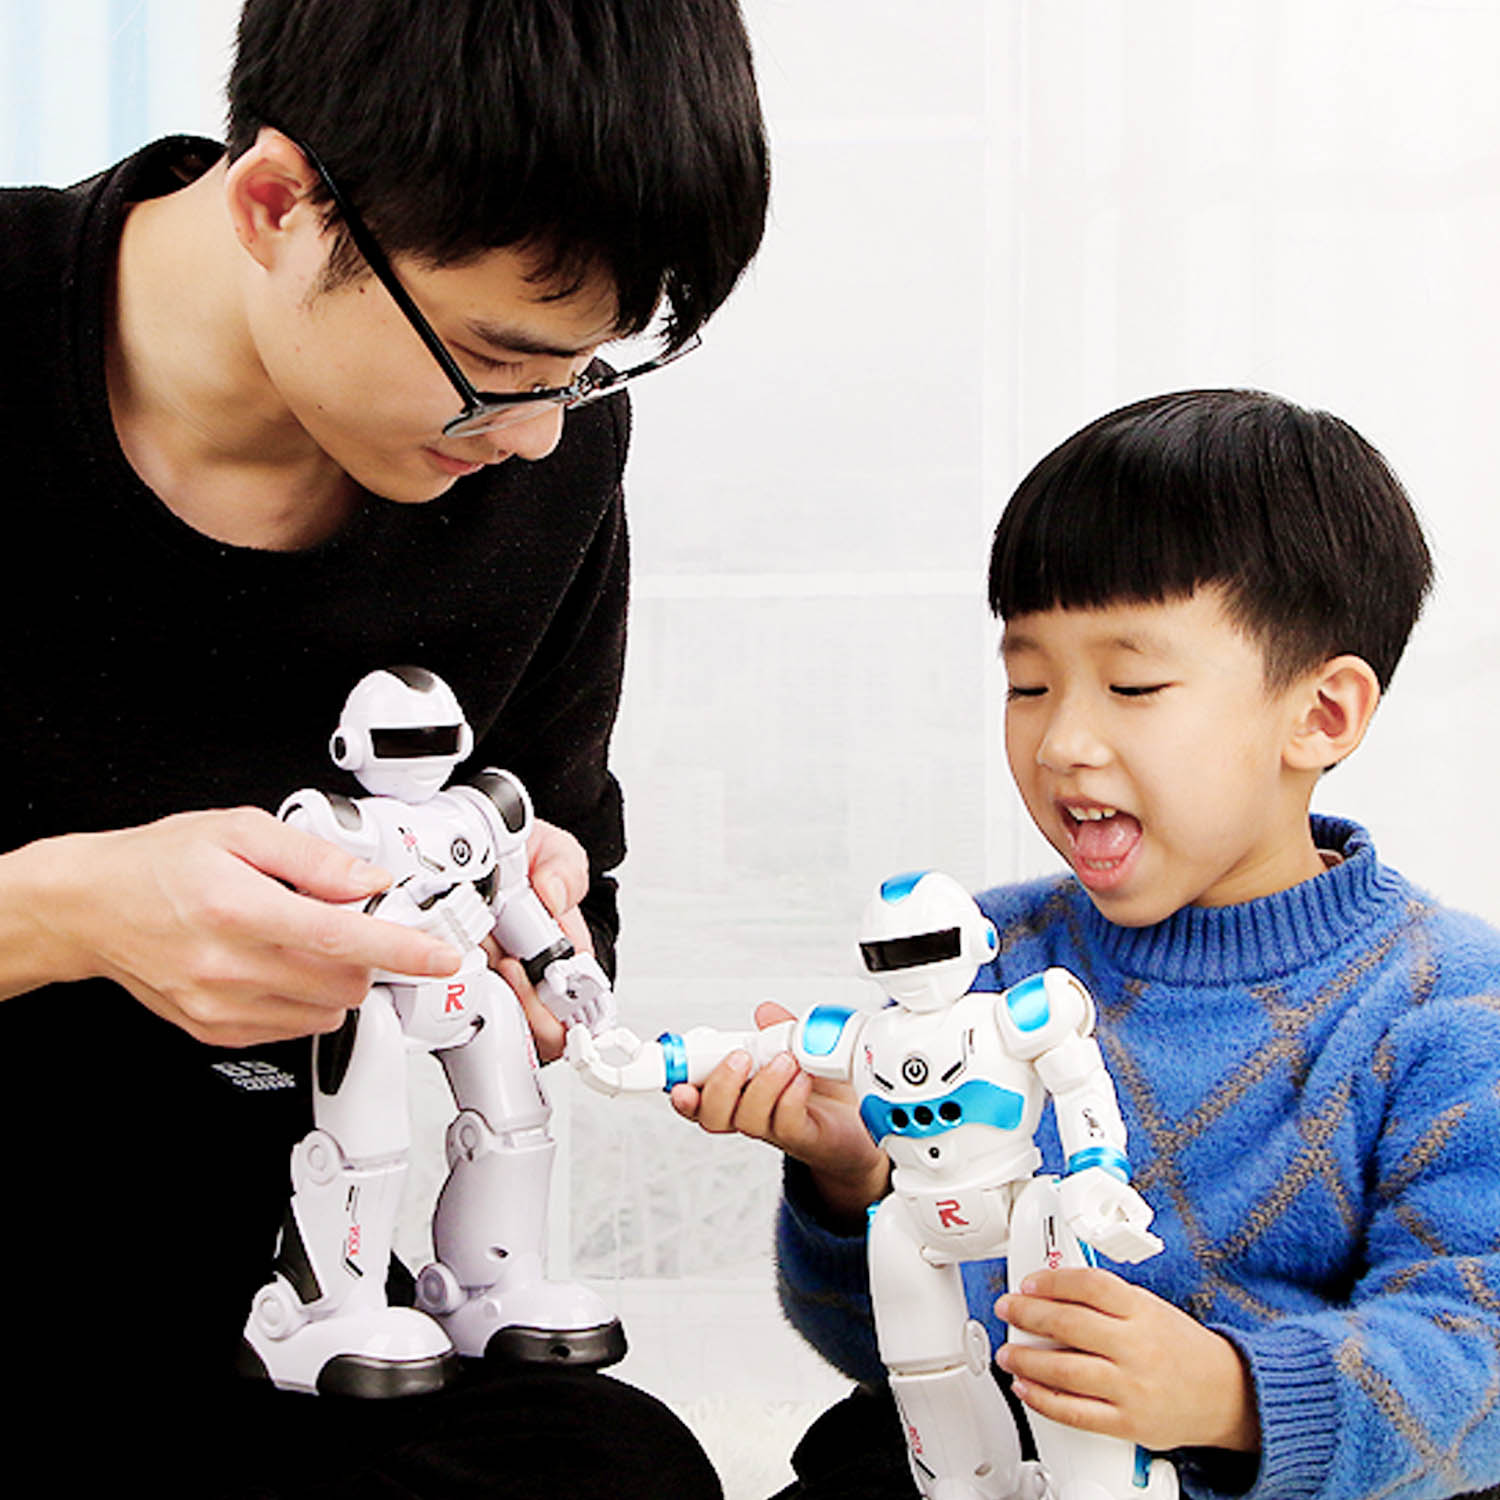 Intelligent Remote RC Control Robot Music Dancing Program Interactive Education Toy For Kids Children Birthday Christmas Gifts